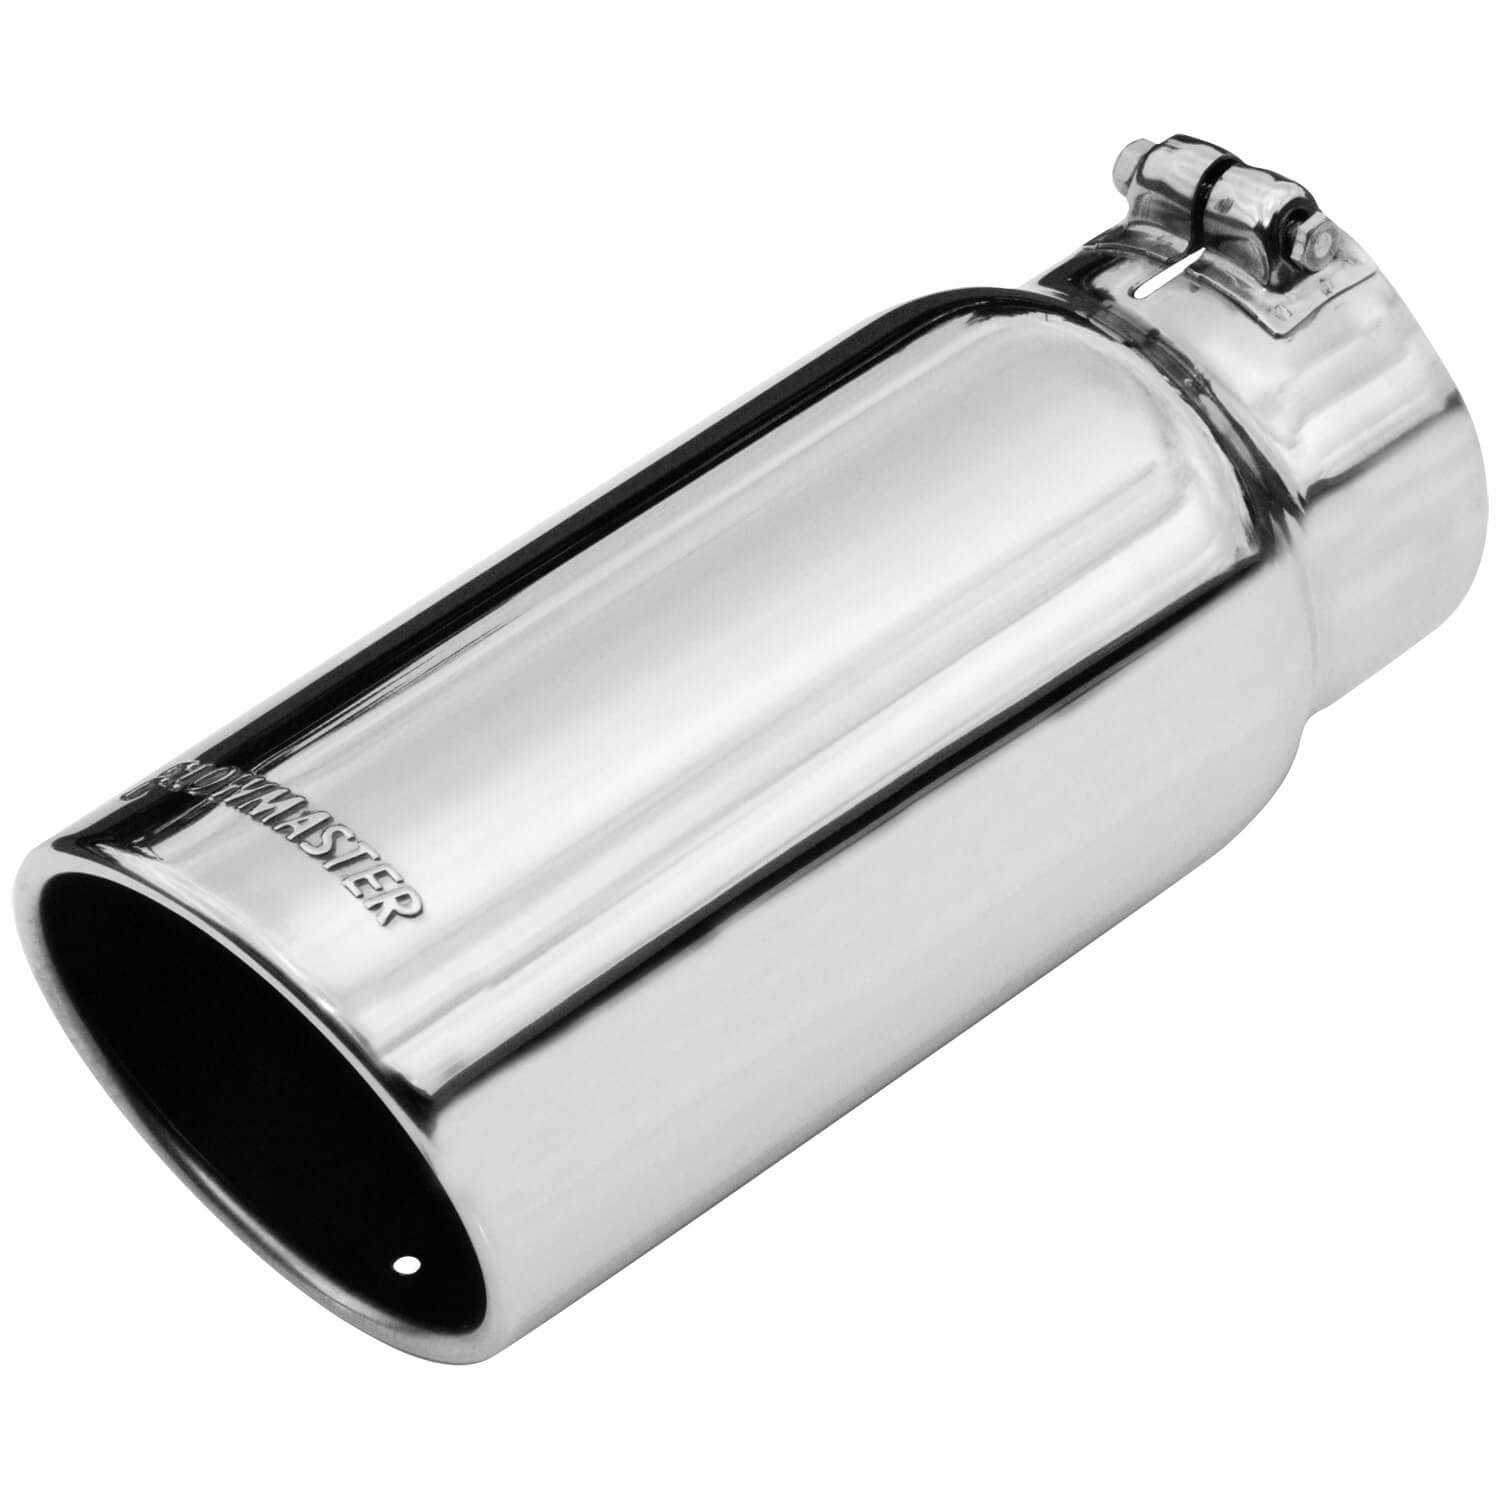 Flowmaster Stainless Steel Exhaust Tip 15368